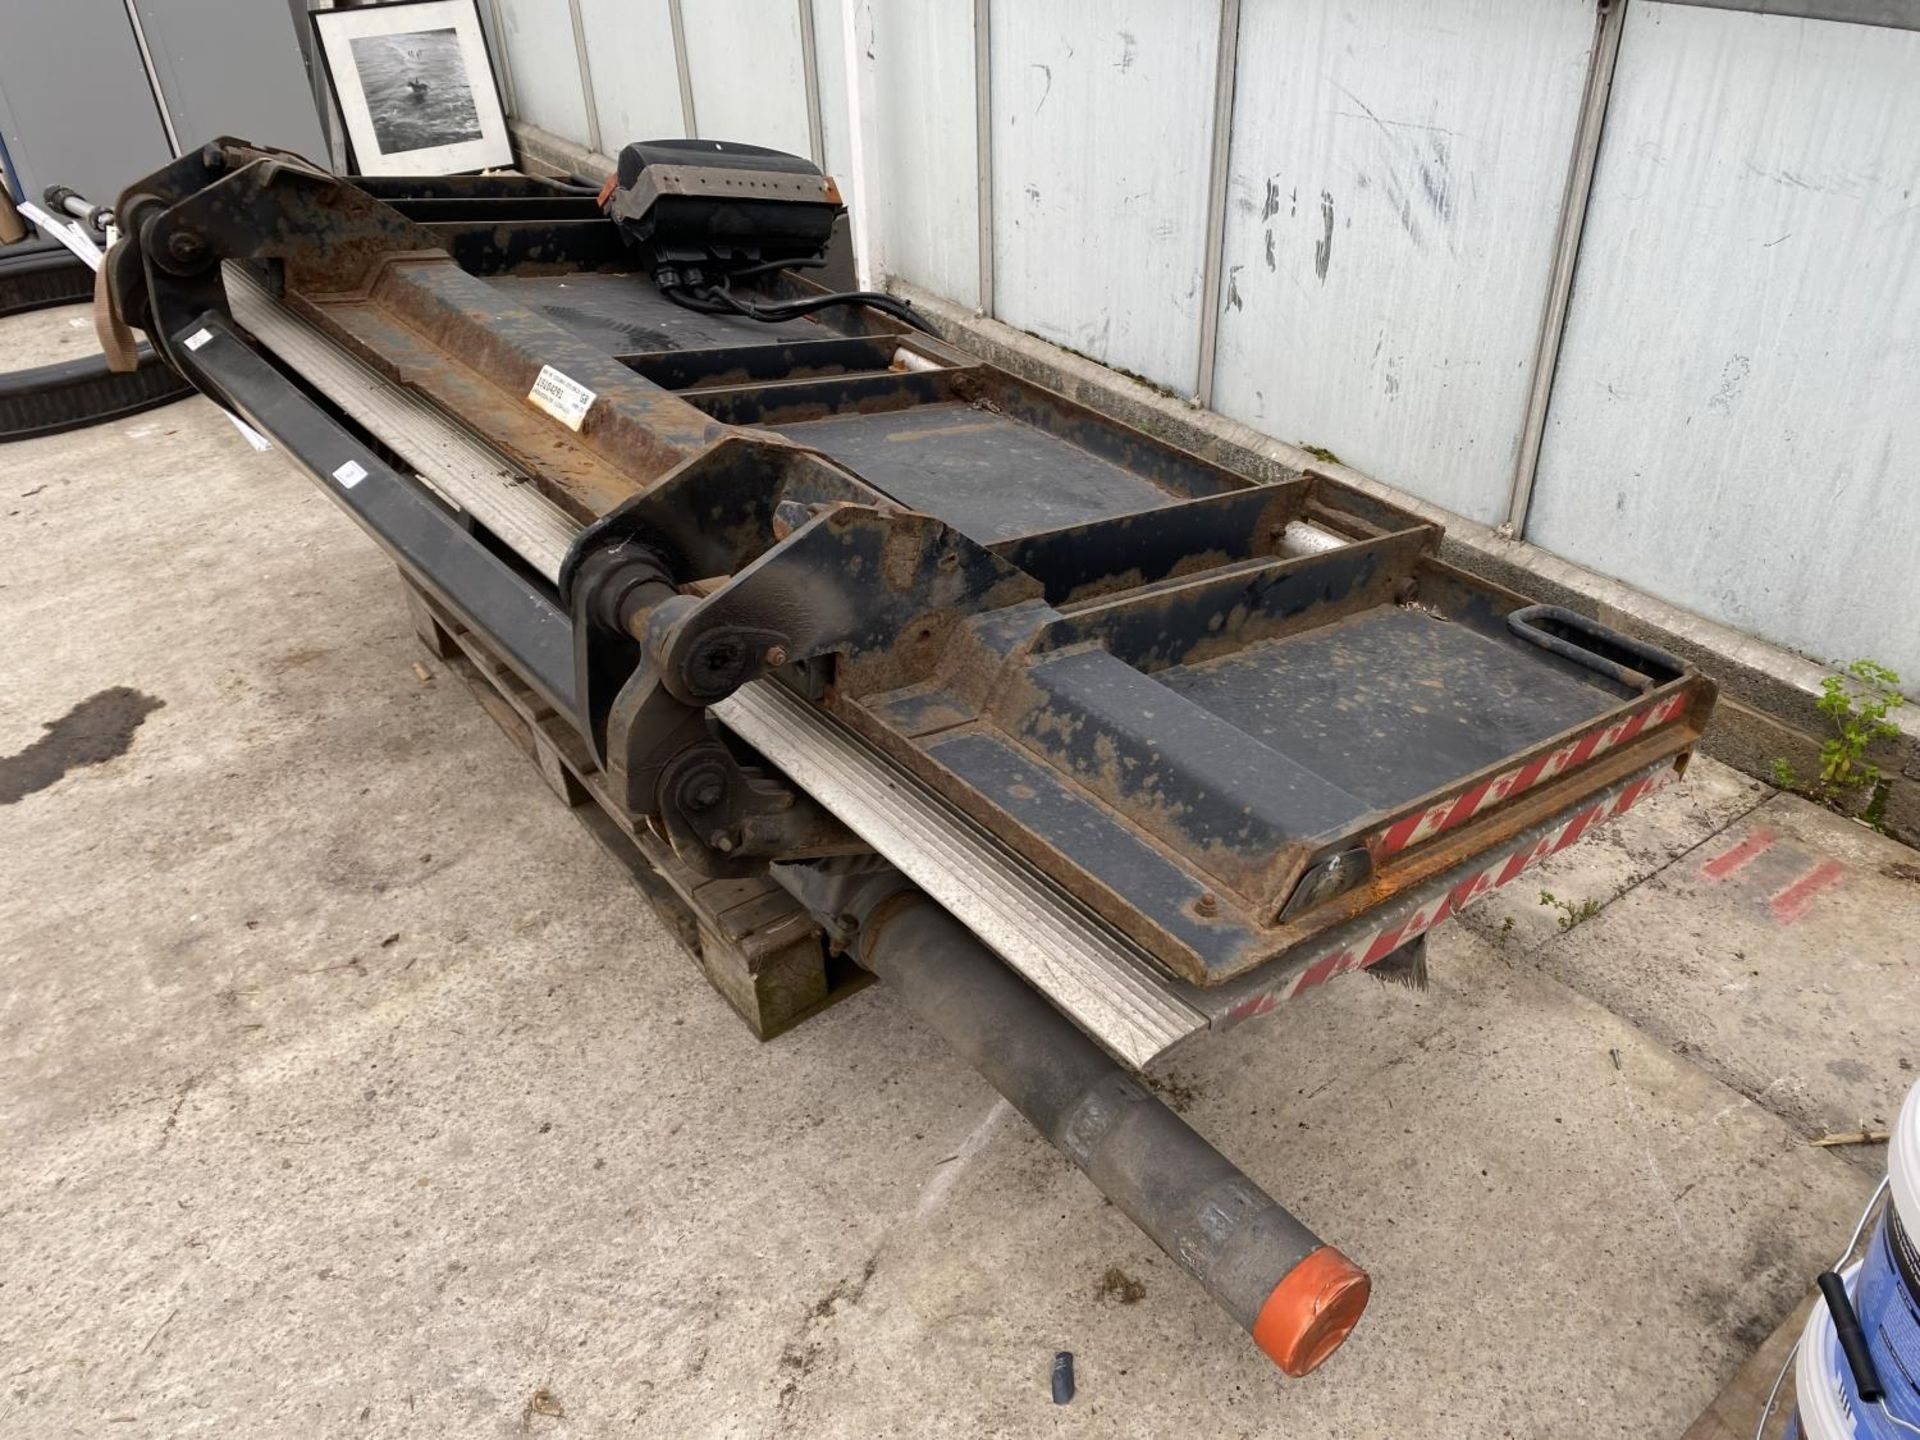 A D.HOLLANDIA TAIL LIFT 1500 KG. BELIEVED WORKING NO WARRANTY - NO VAT - Image 5 of 6